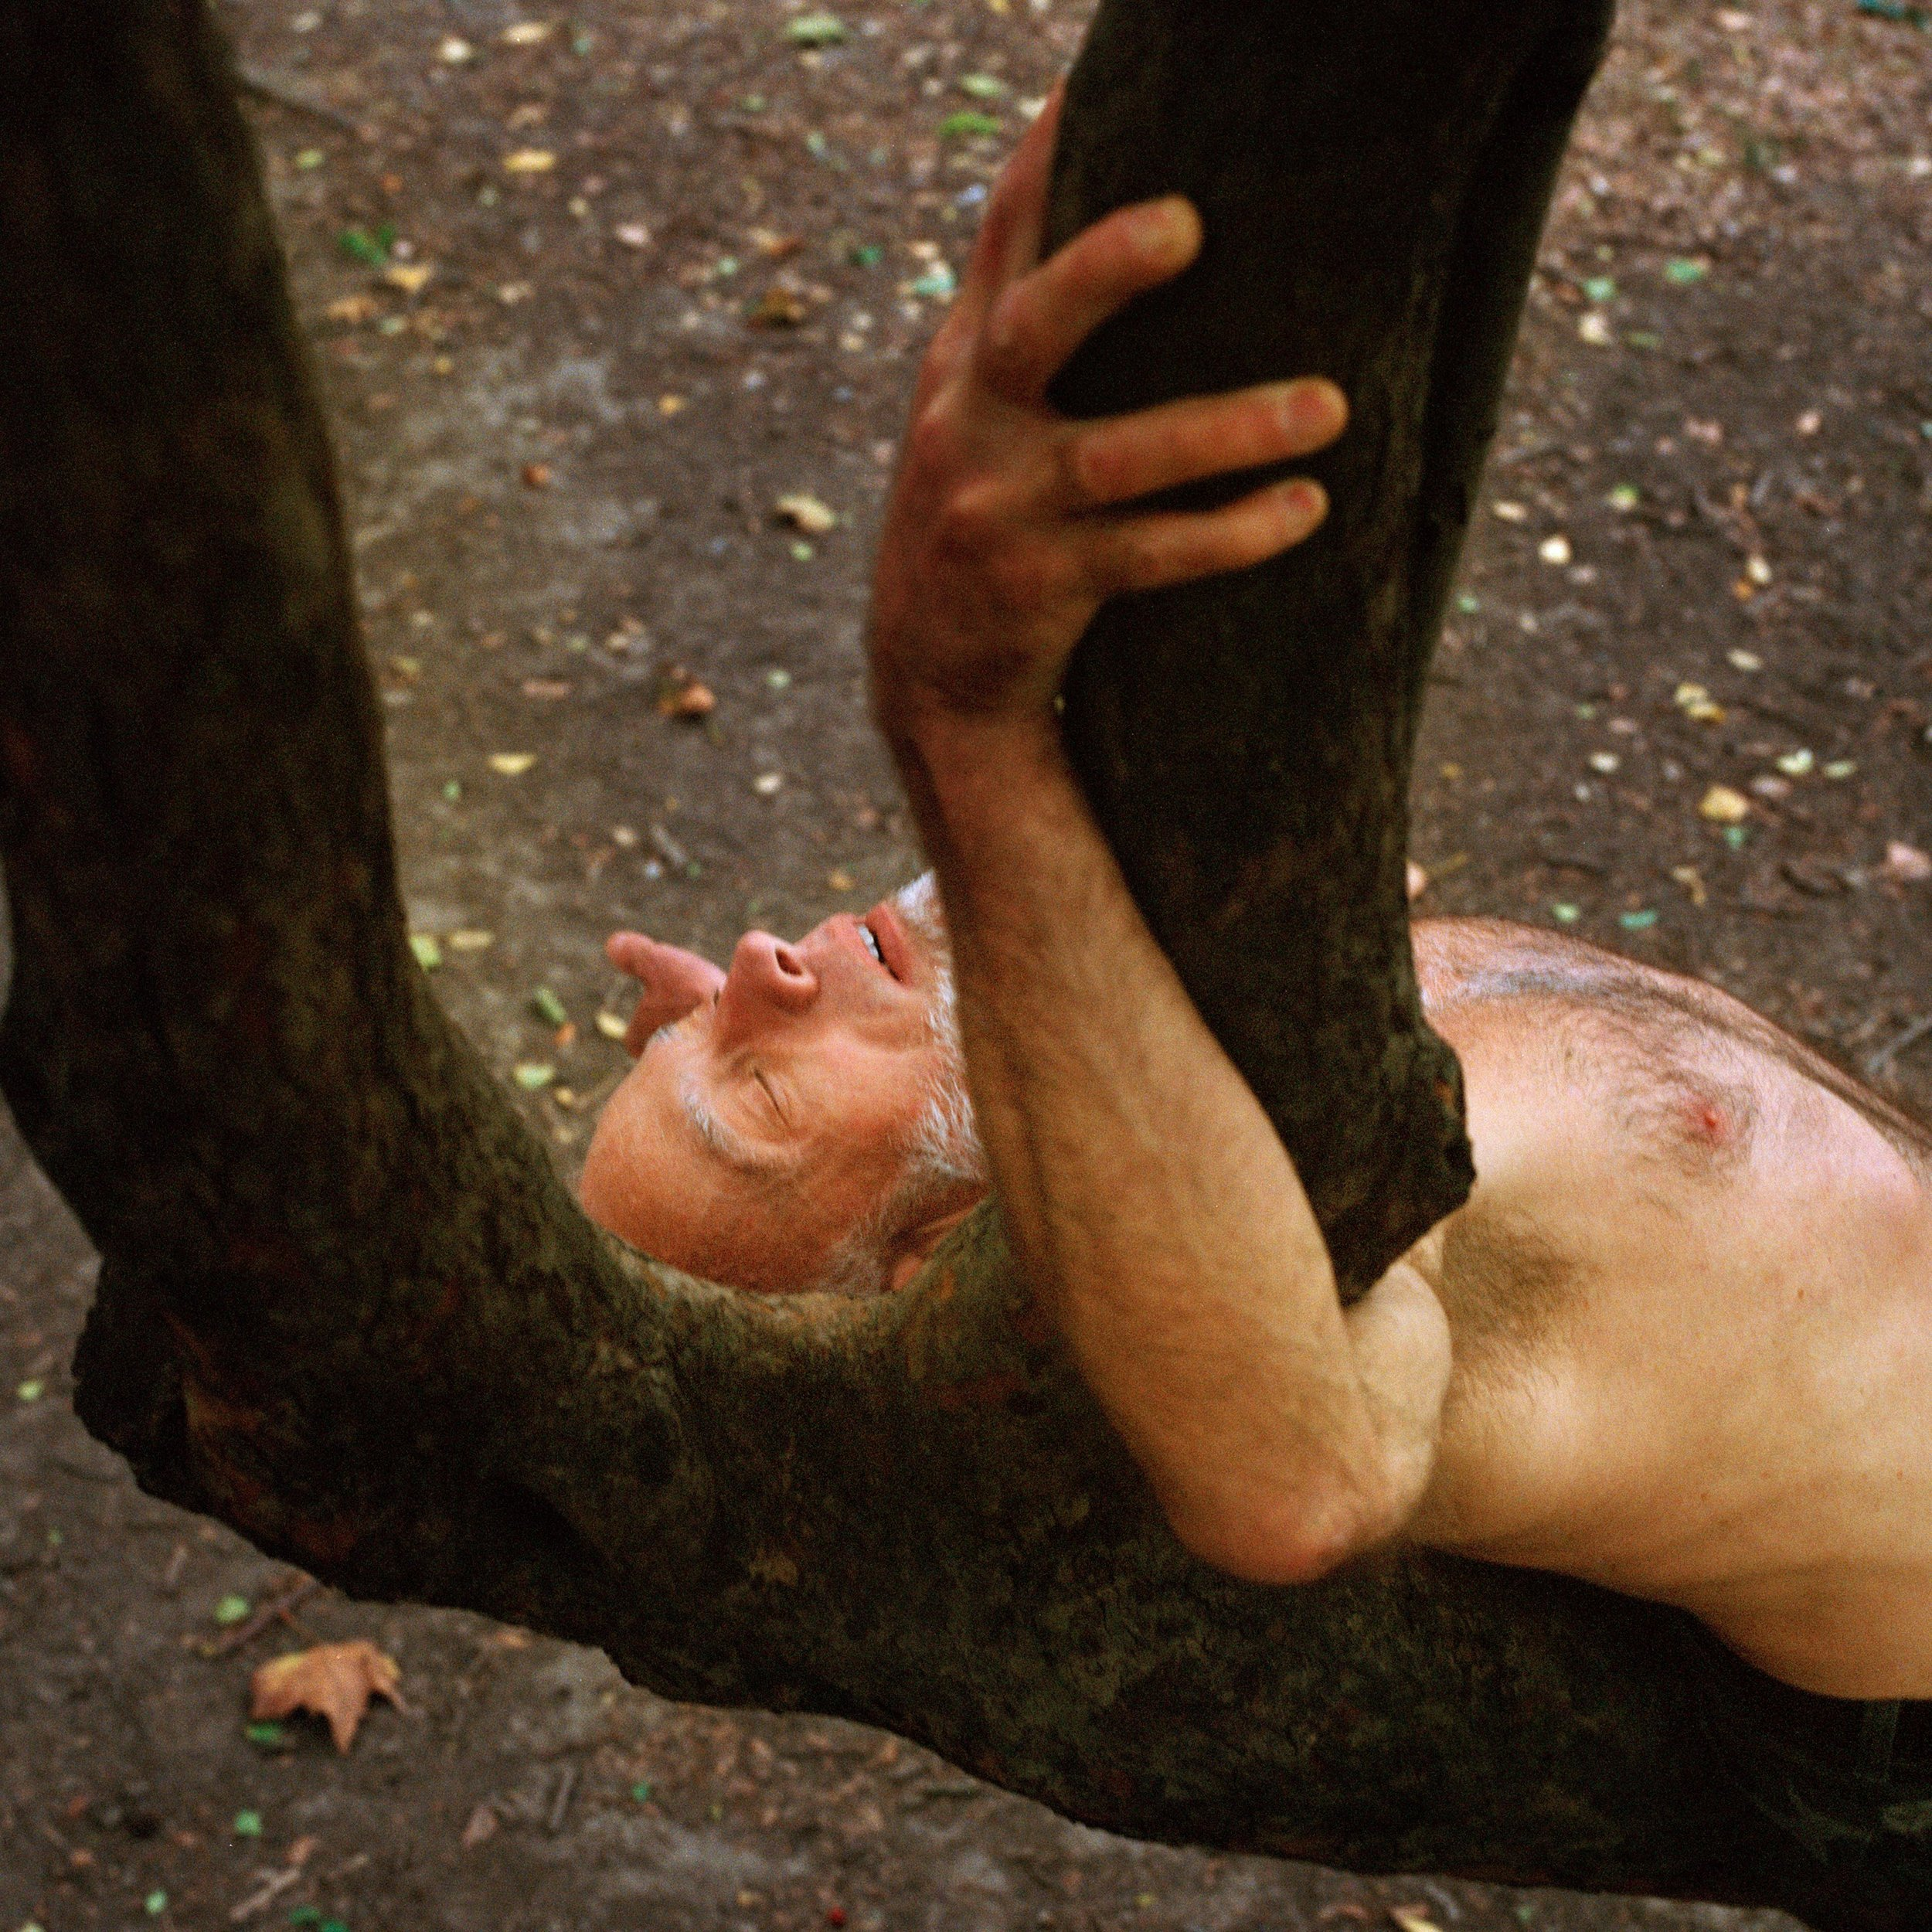 41_Dennis in the Tree_1.jpg